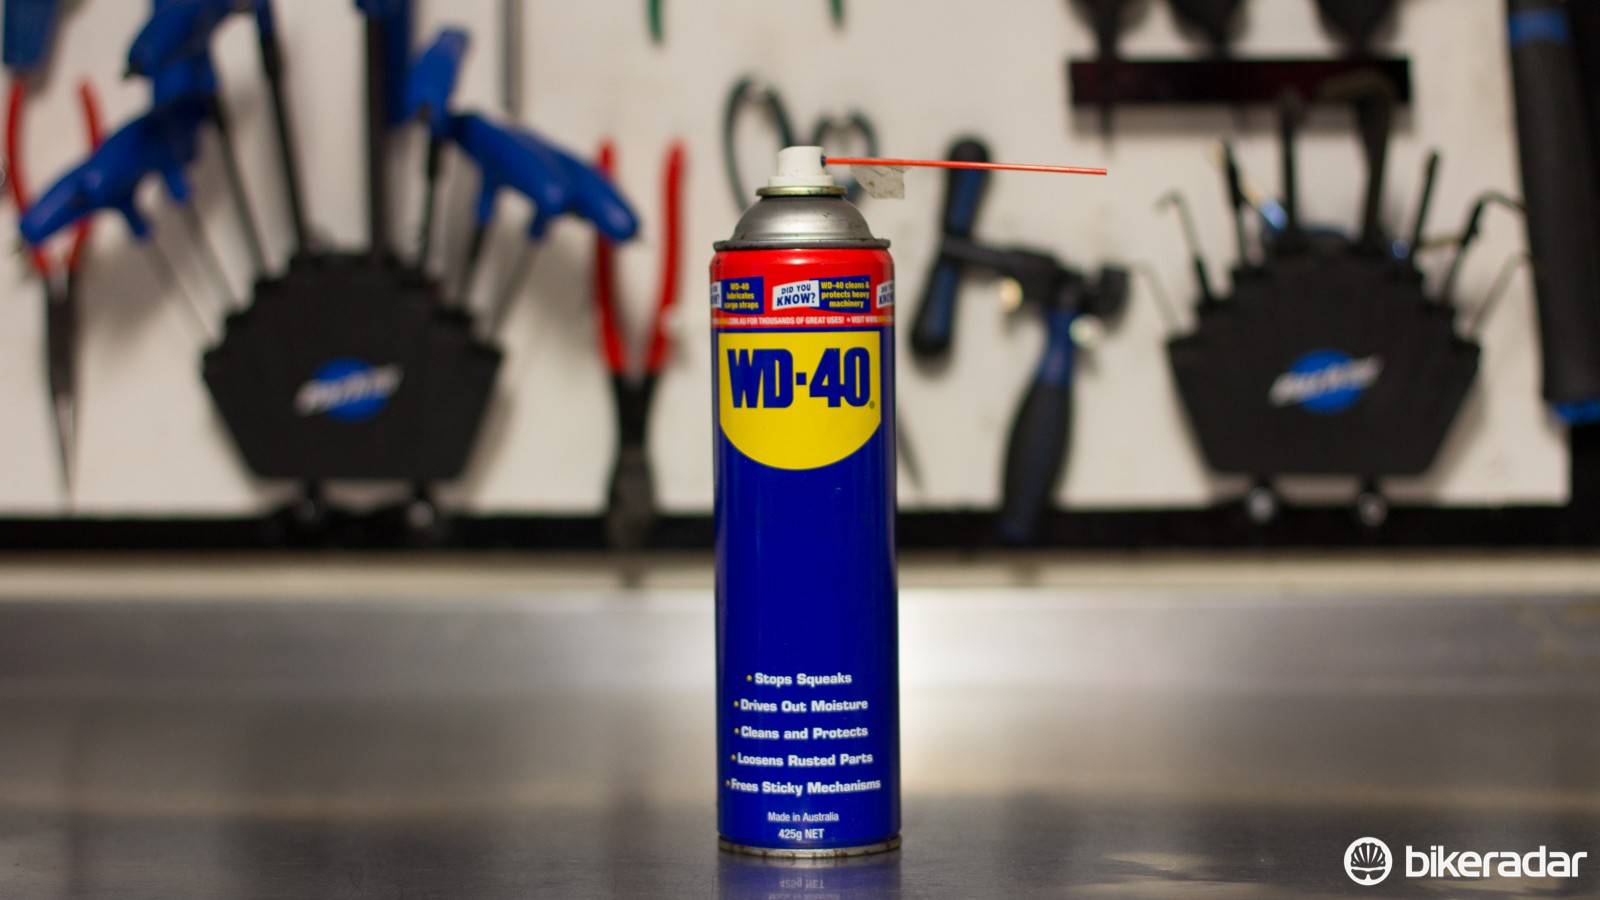 Perhaps the most controversial item in a cycling workshop. WD-40 is still handy to have around — just don't use it as a chainlube (even WD-40 makes a product for that)